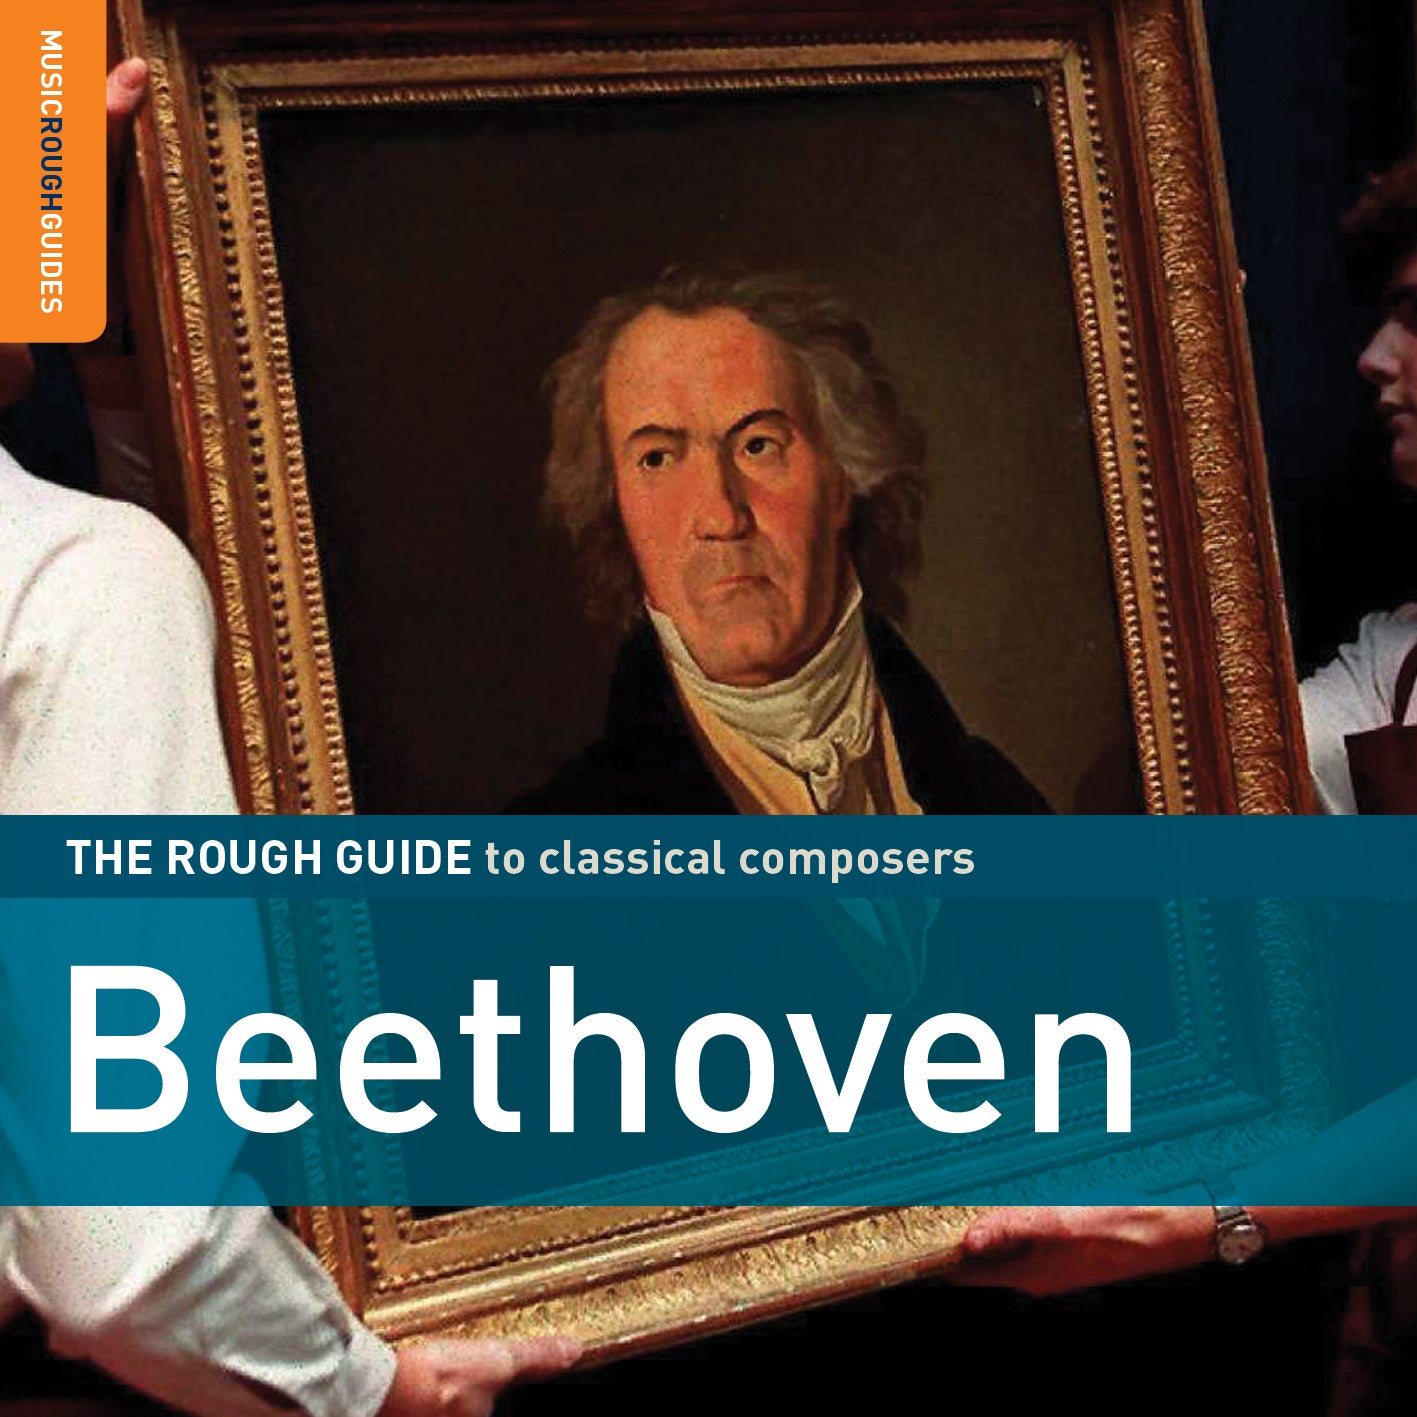 The Rough Guide To Classical Composers: Beethoven